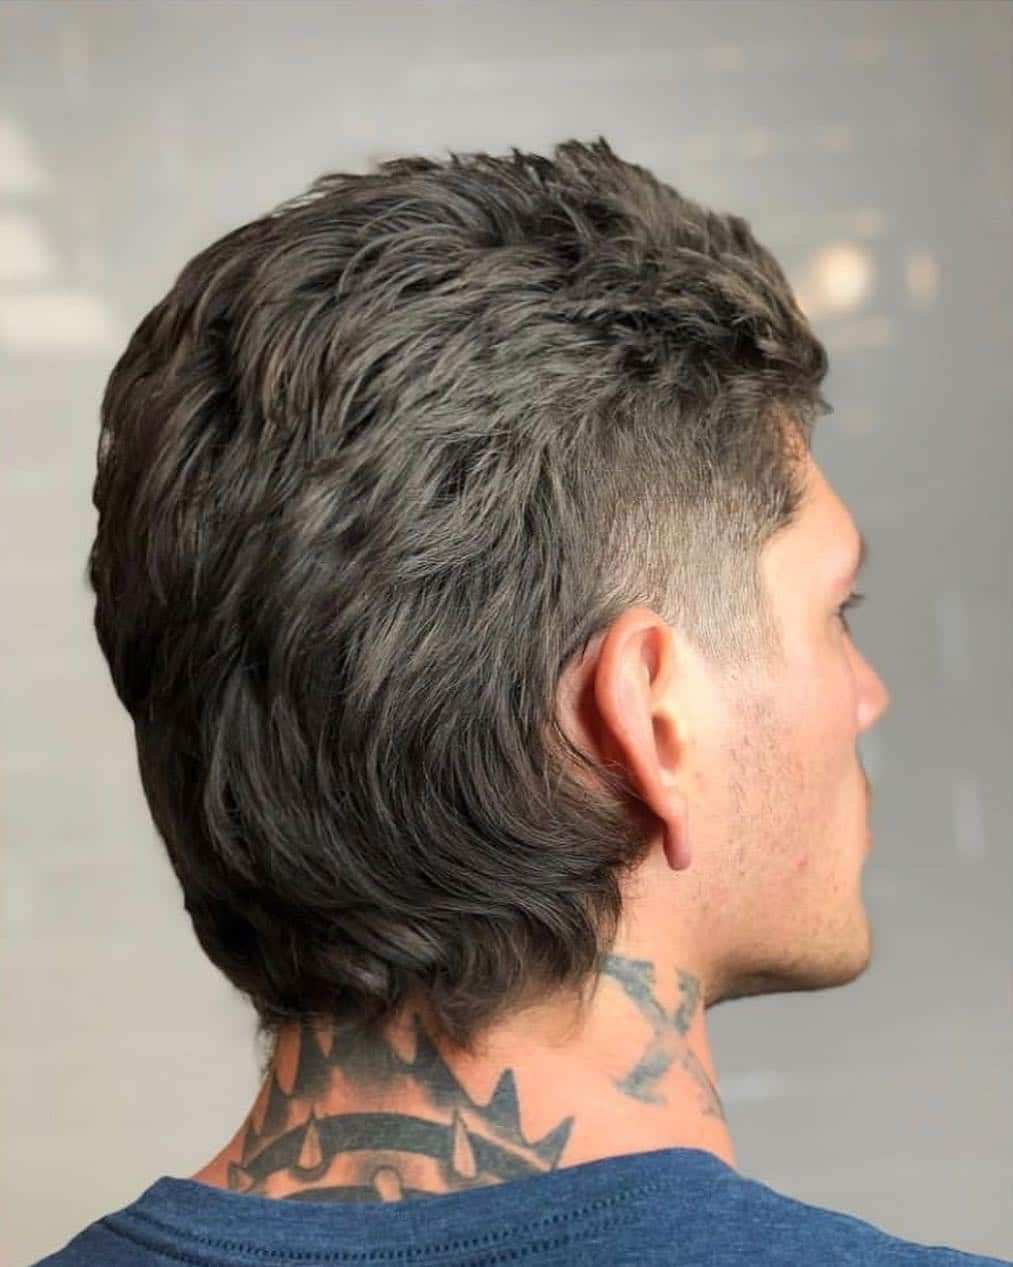 25 Crazy Mullets For Men (2020 Styles) | Mullet haircut ...